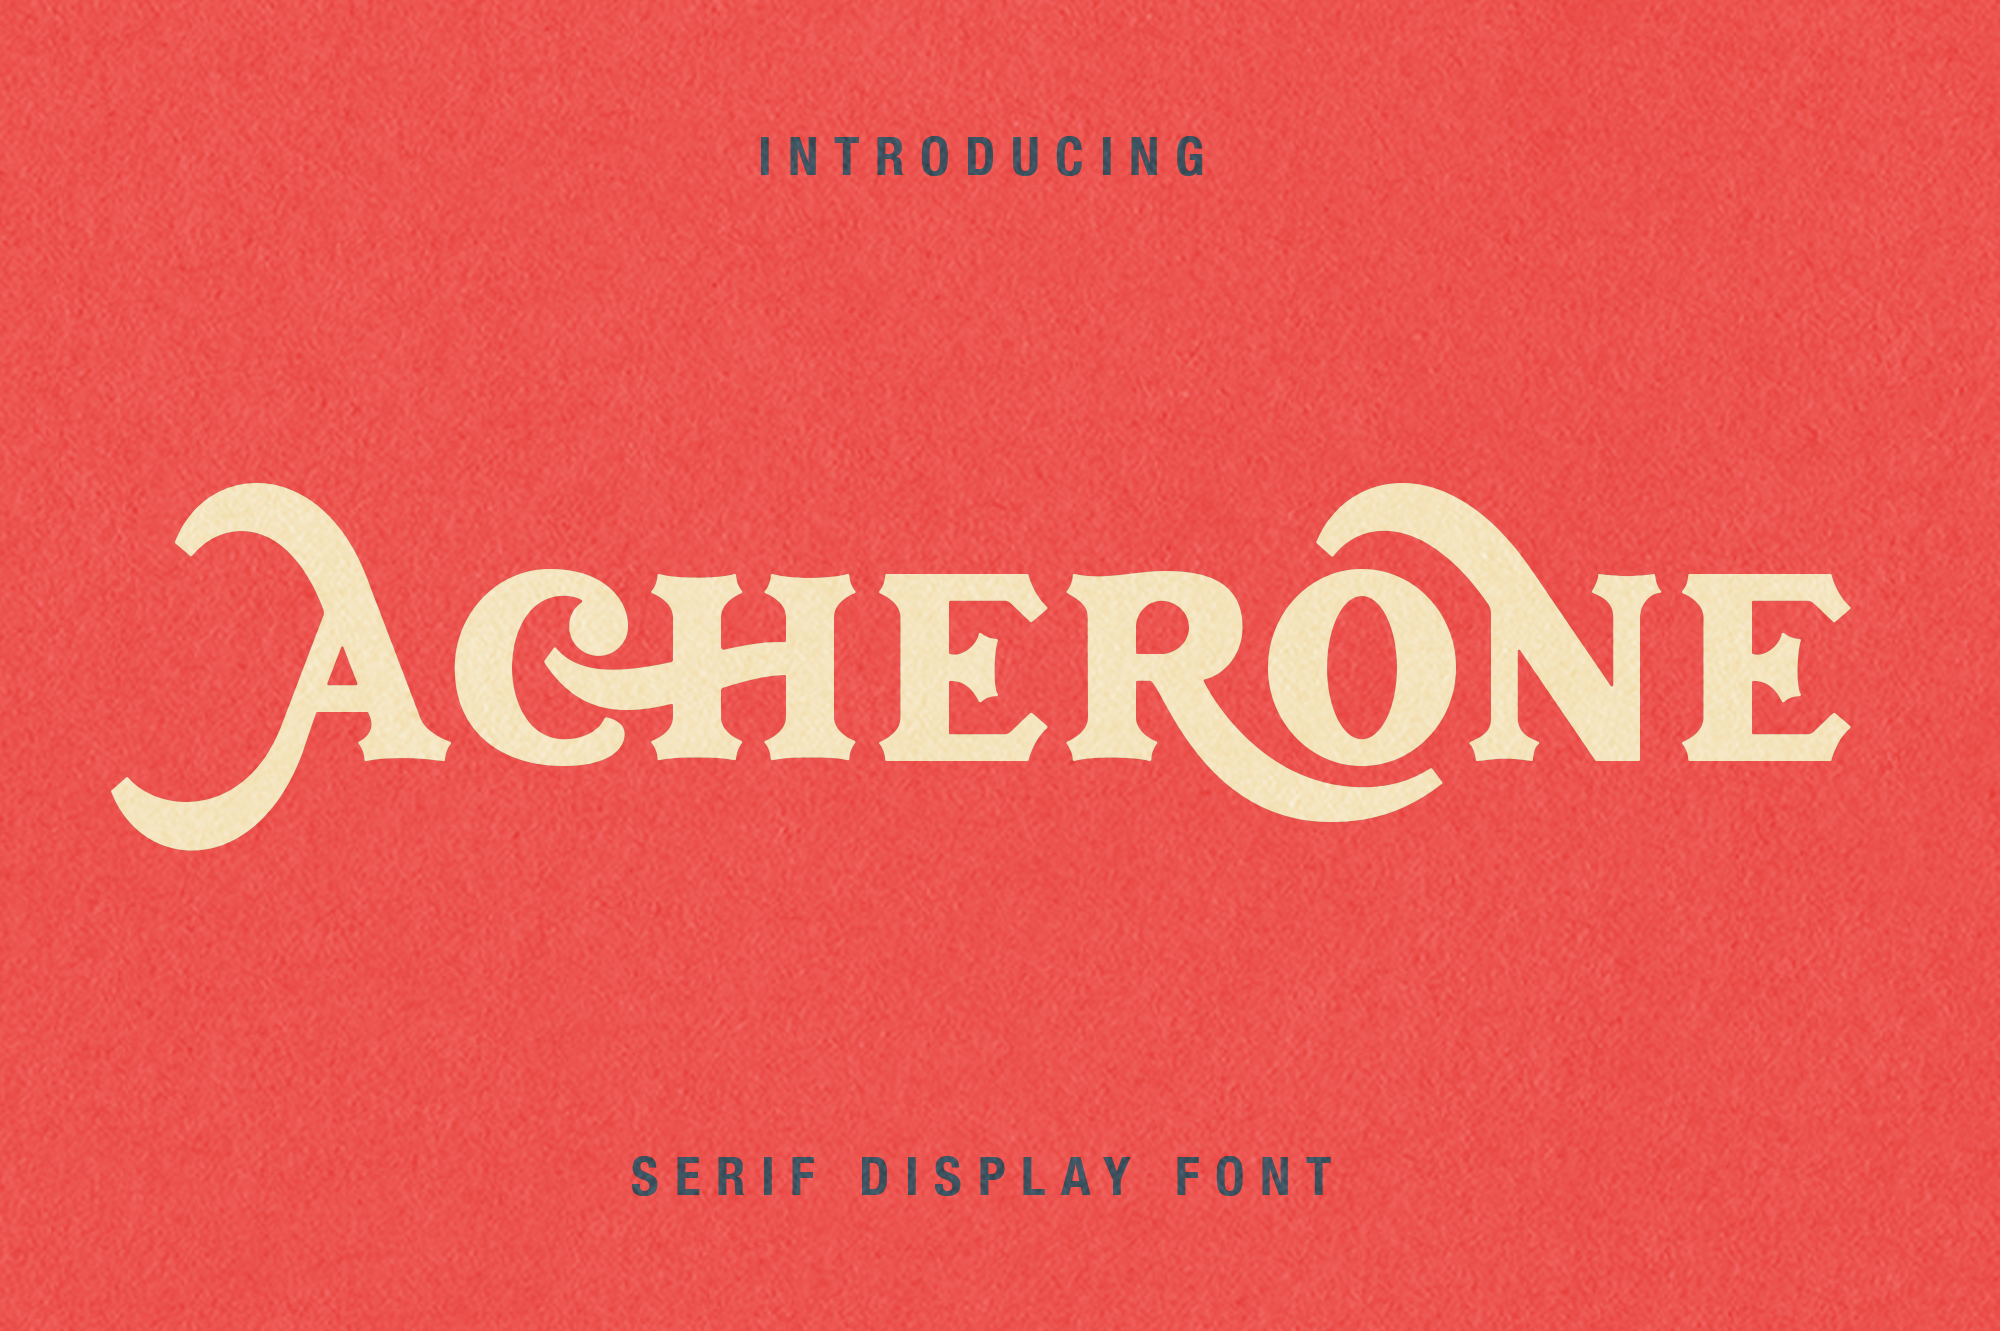 Archerone - Serif Display Font example image 1